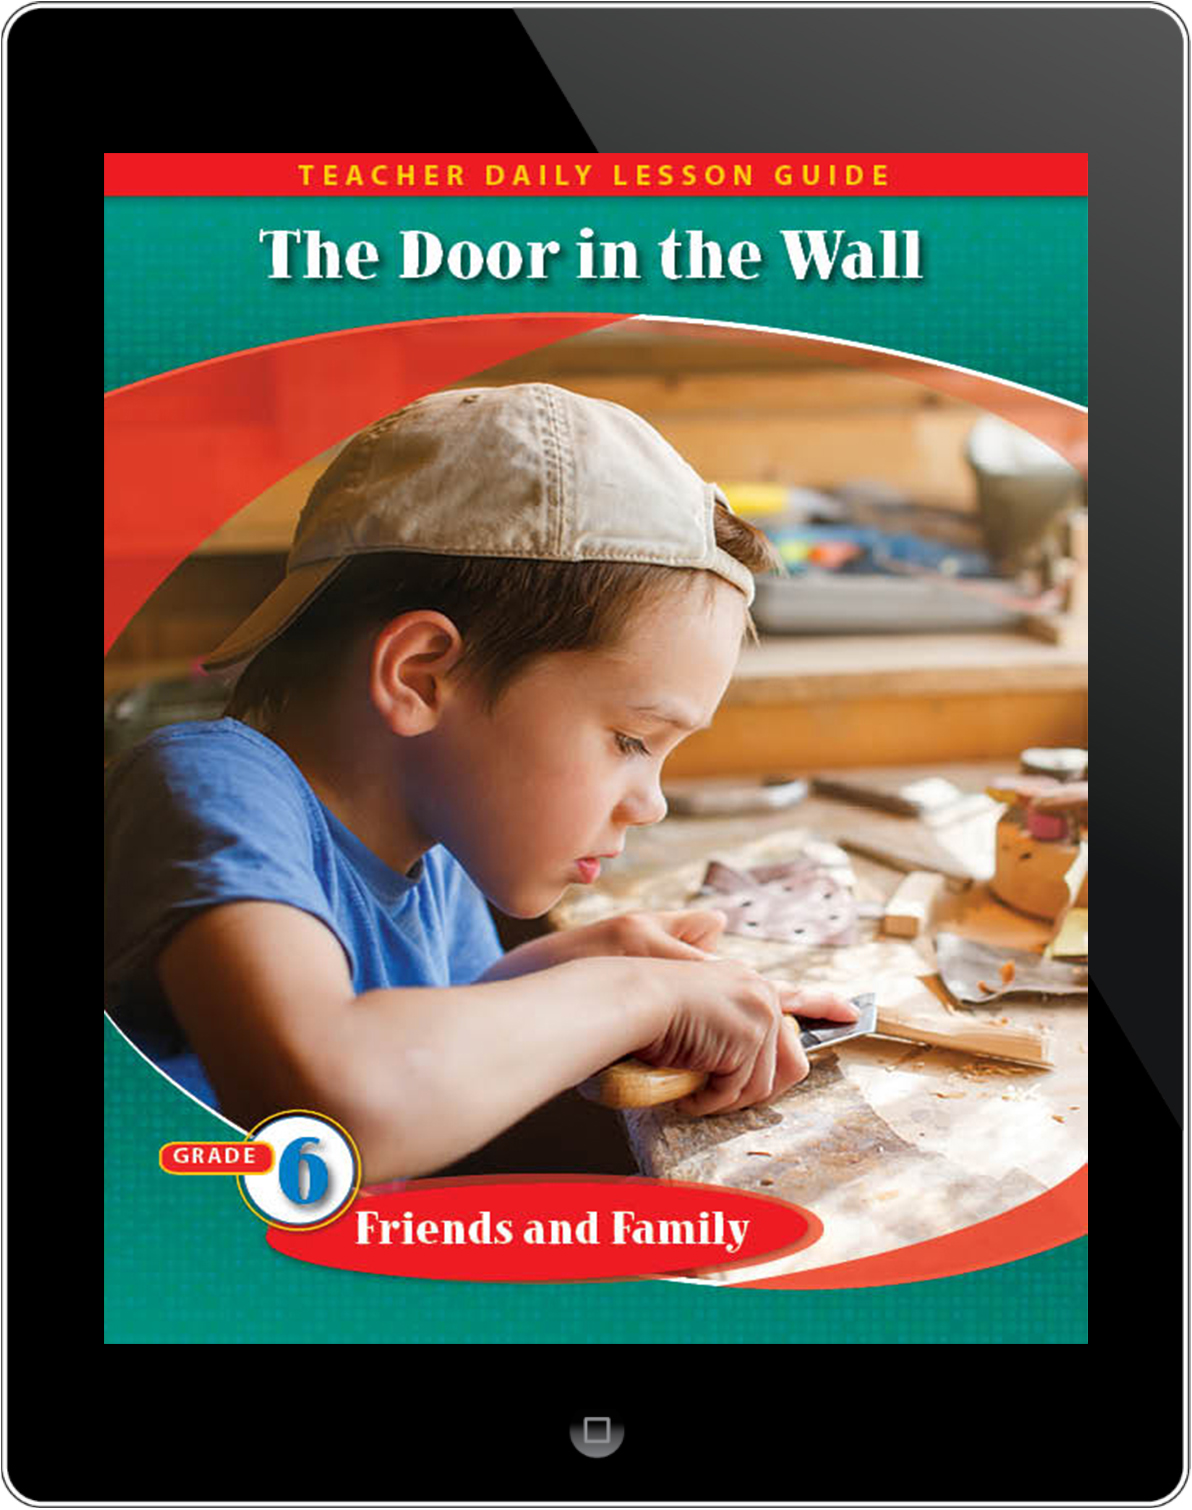 Pathways2.0 Grade 6 Friends and Family Unit: The Door in the Wall Daily Lesson Guide 5 Year License